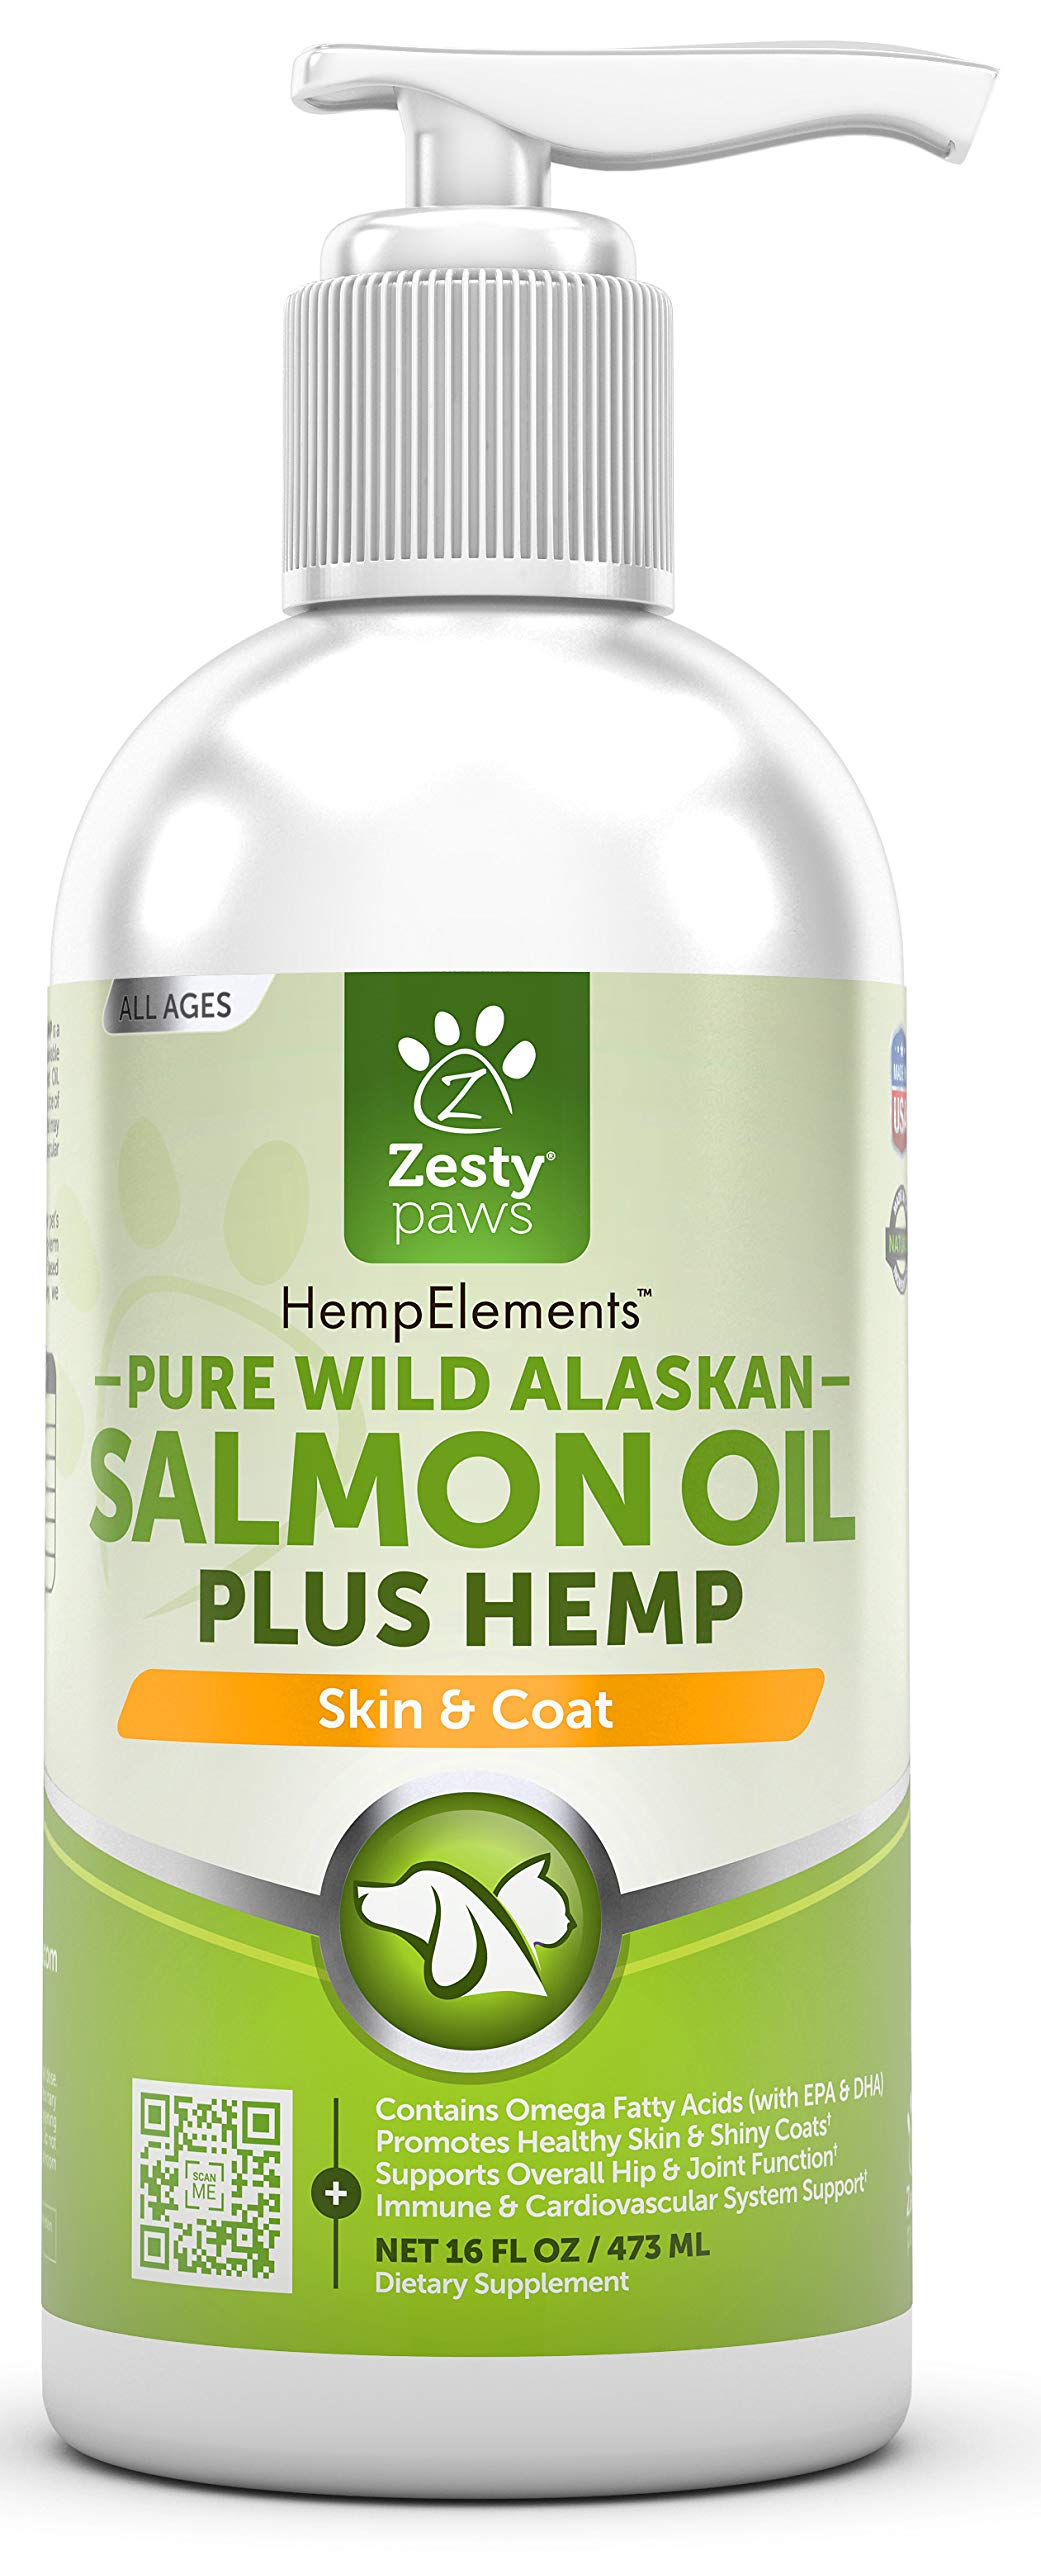 Pure Wild Alaskan Salmon Oil with Hemp for Dogs & Cats - Omega 3 & 6 Fish Oil Pet Supplement with EPA & DHA - Anti Itching Skin & Coat Care + Hip & Joint Health - Heart & Immune Support - 16 FL OZ by Zesty Paws